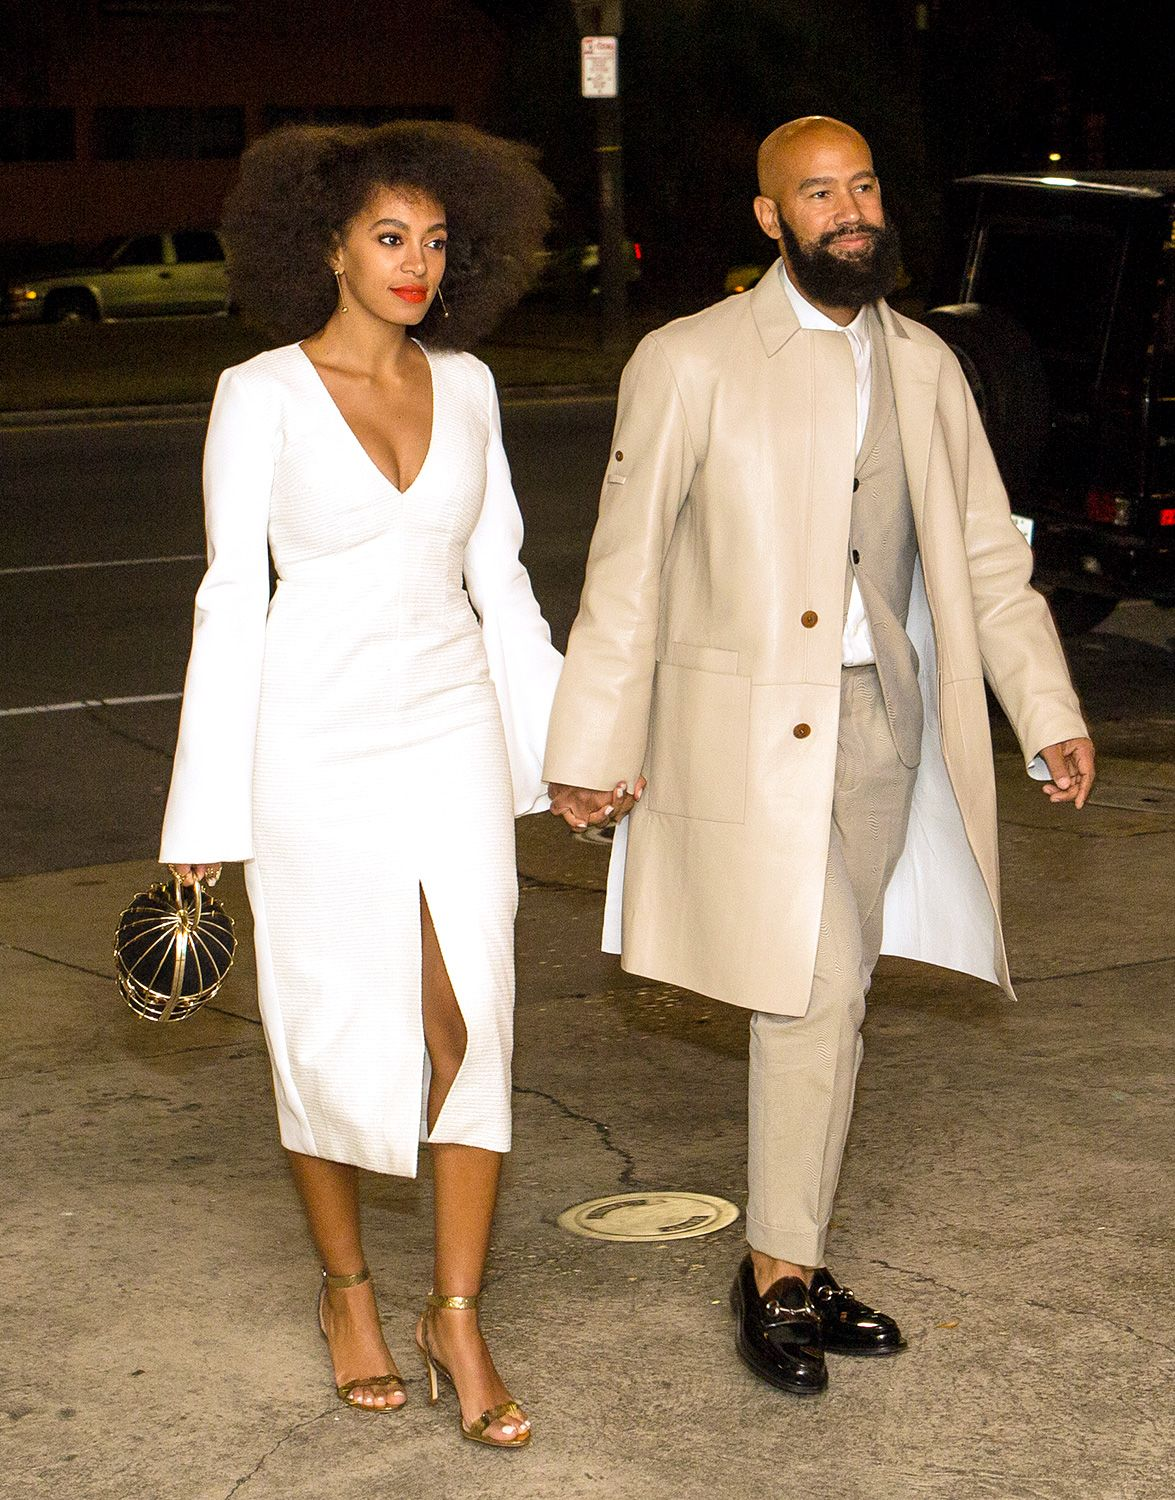 To acquire Knowles solange already hands zimmermanns spring collection picture trends